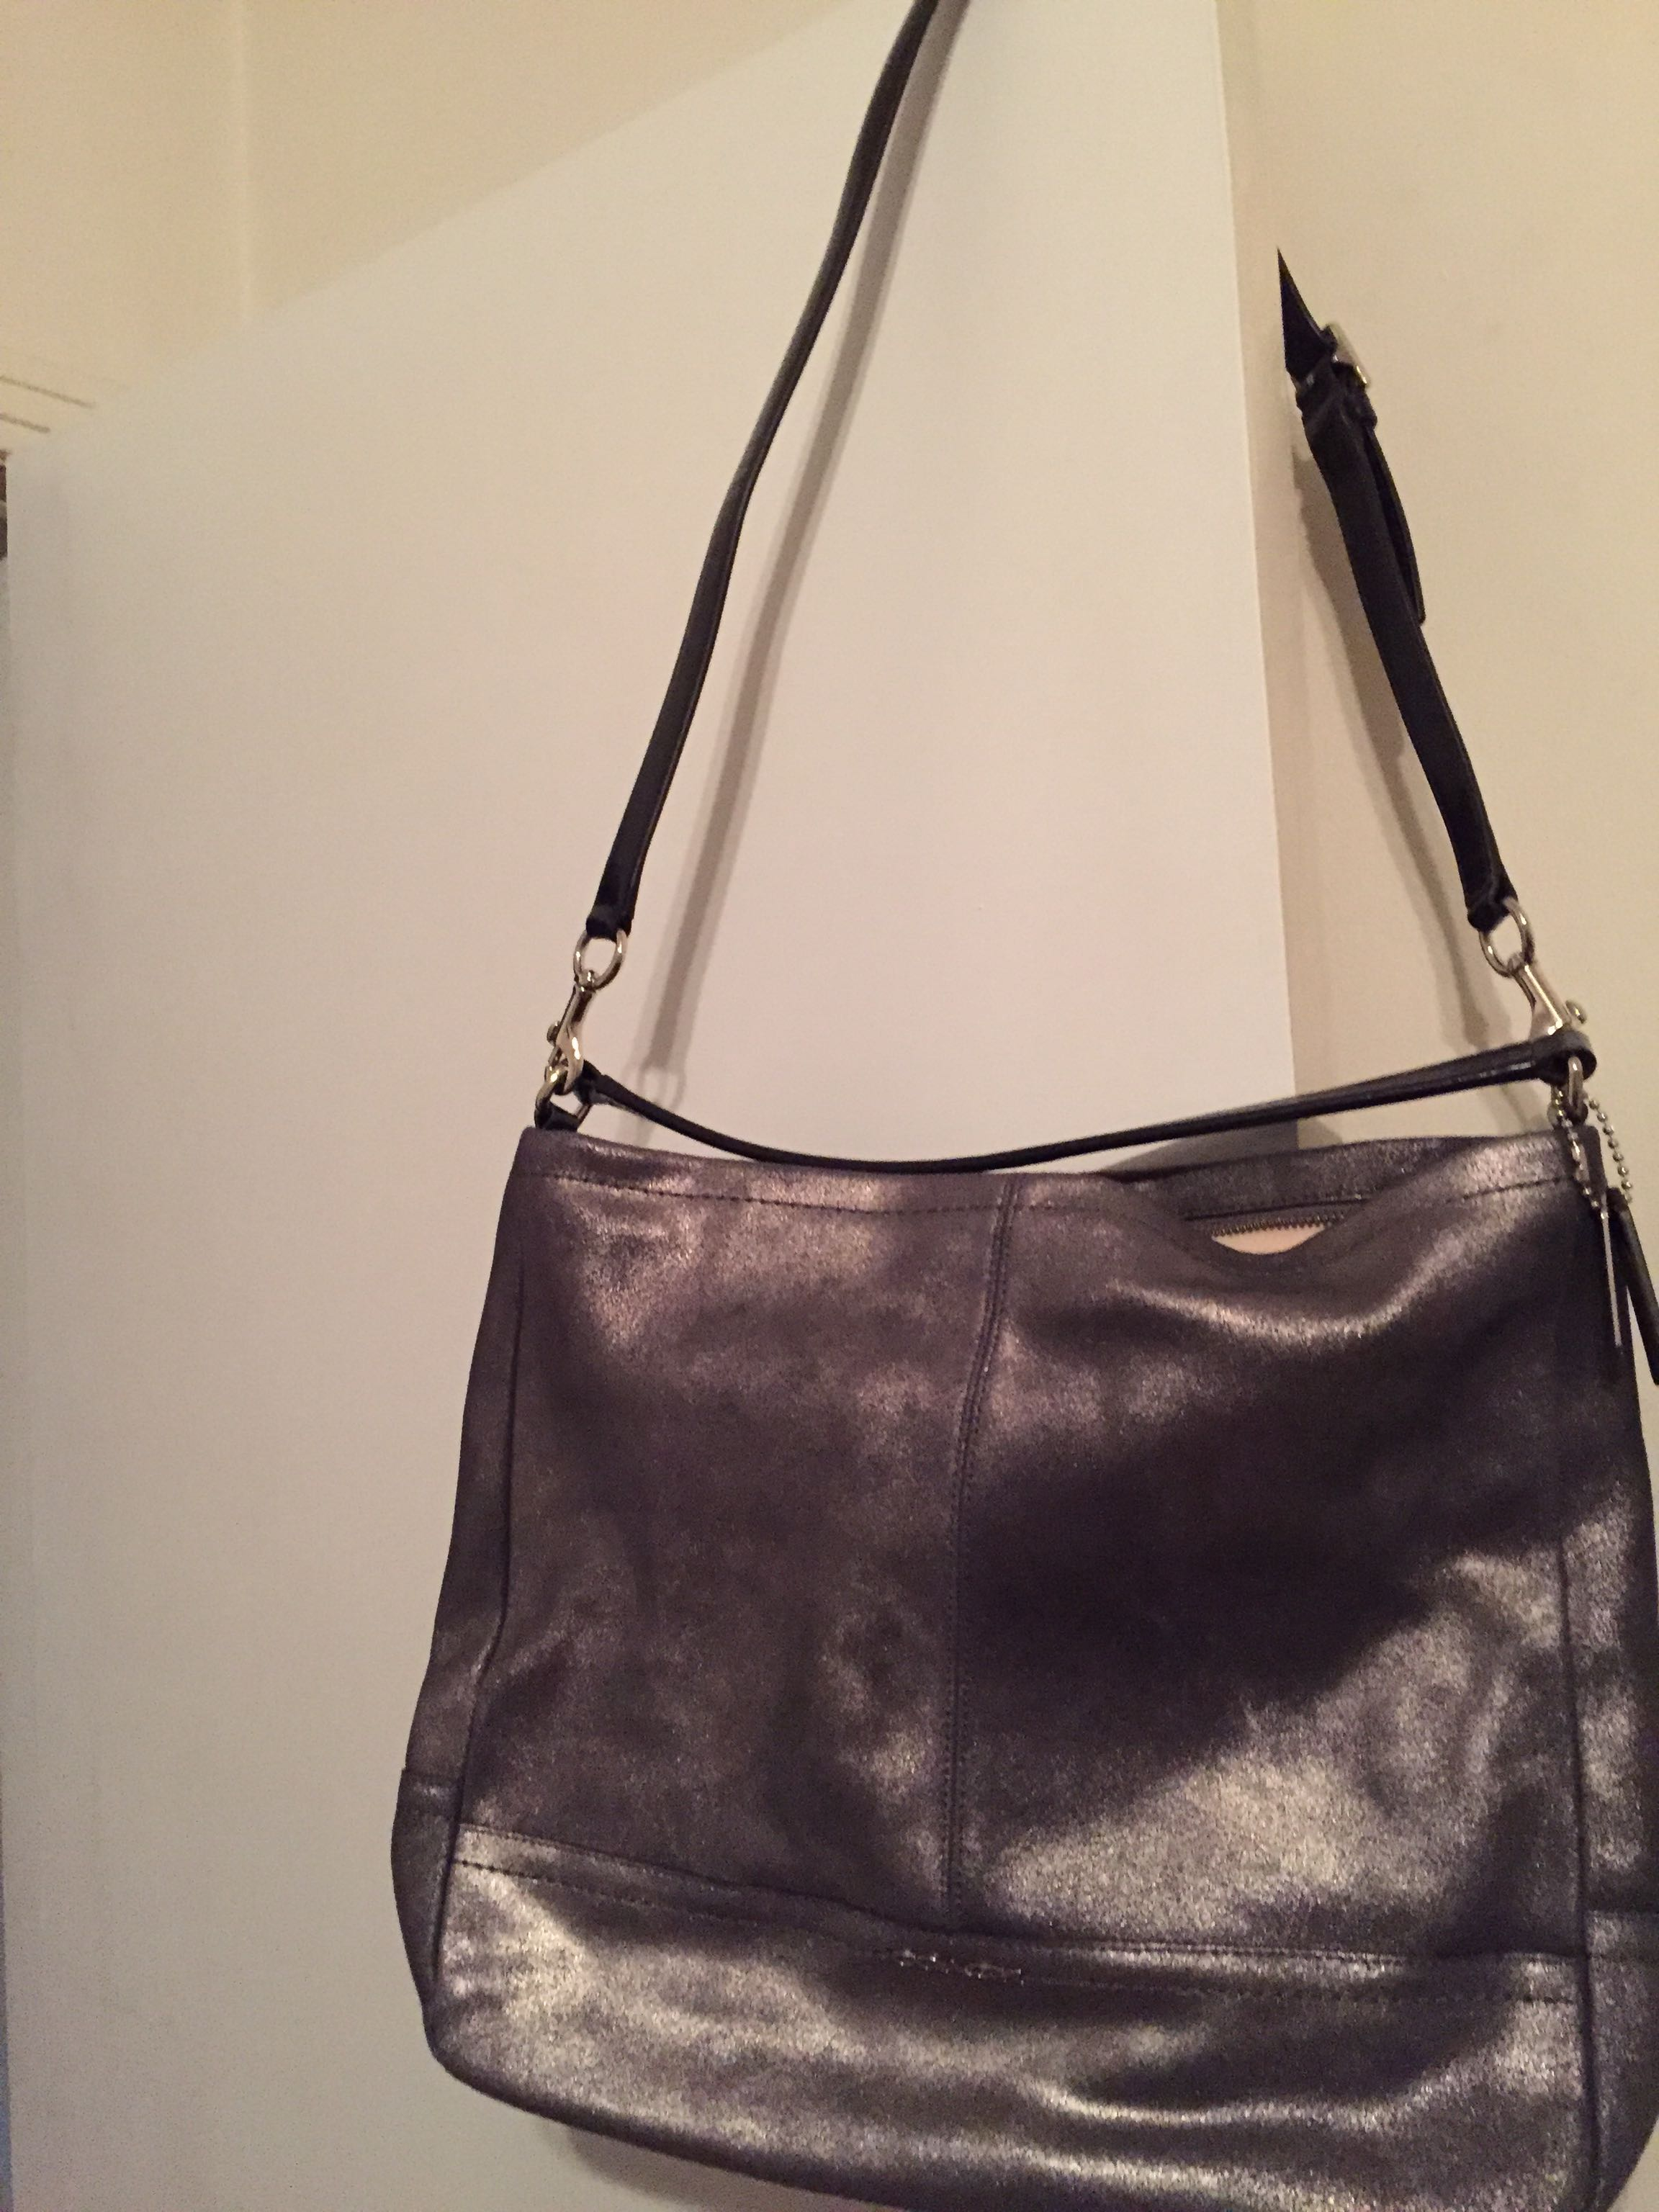 Authentic coach shoulder and cross body bag